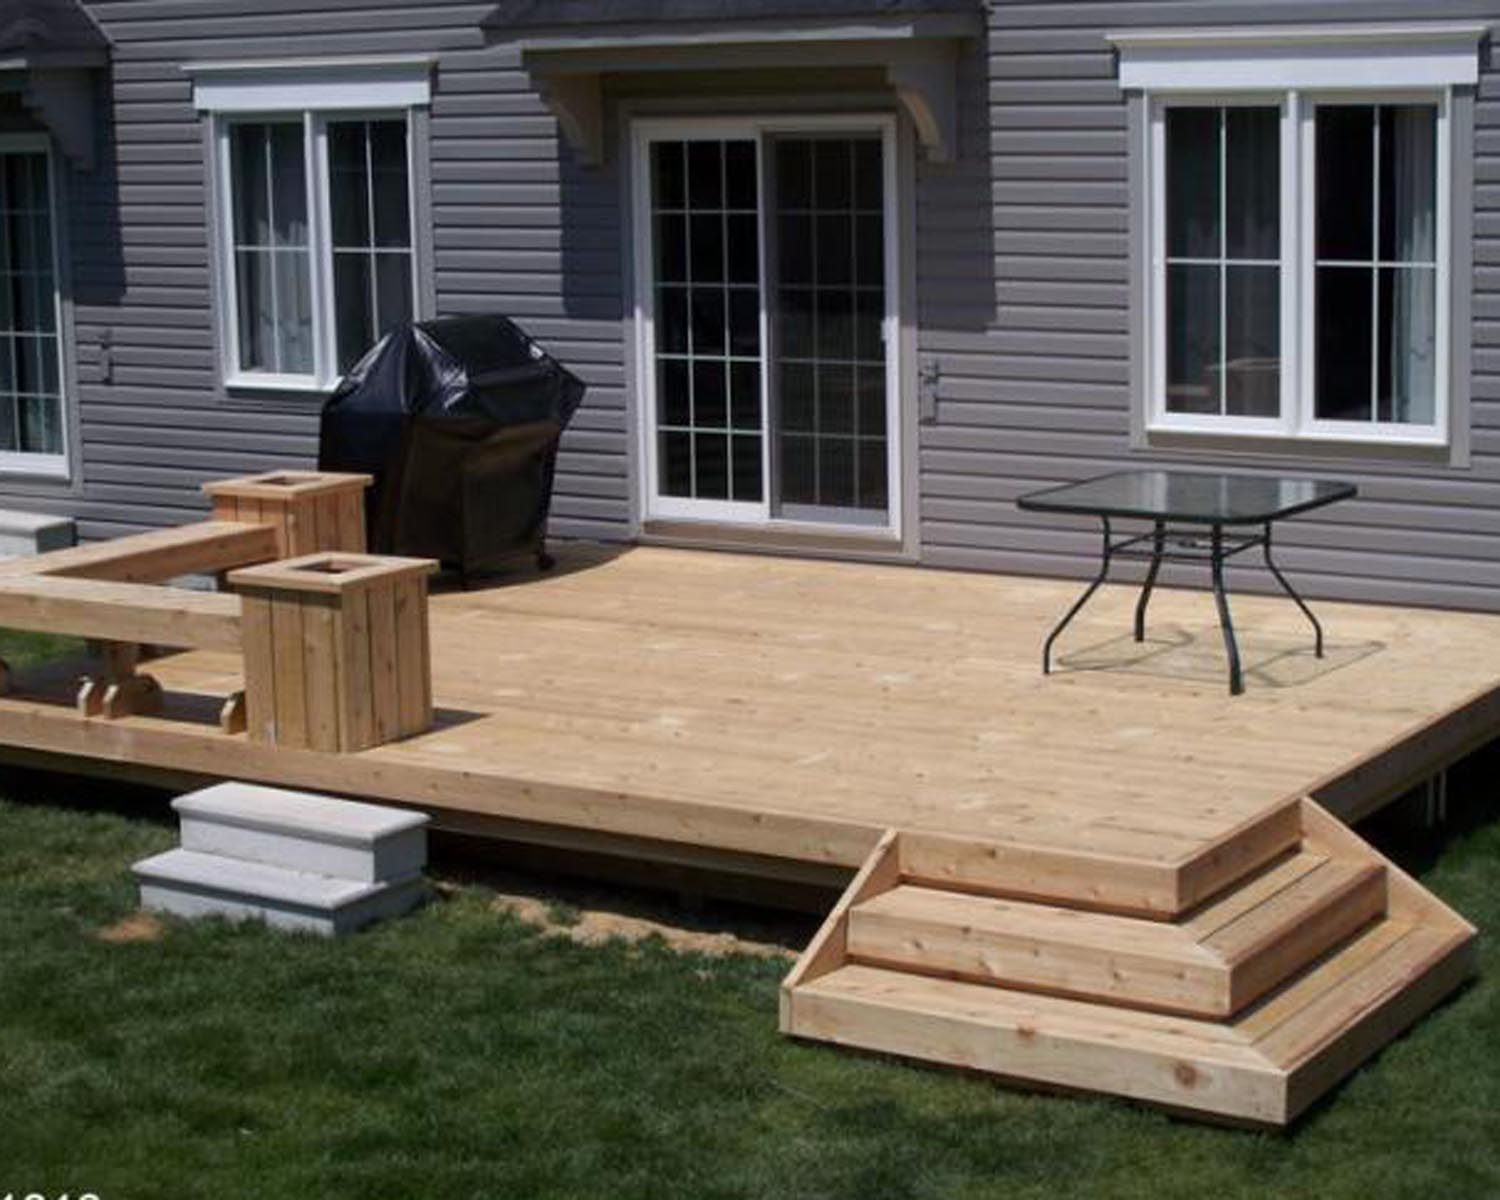 17 best ideas about small deck designs on pinterest patio deck designs decks and free deck plans - Deck Design Ideas